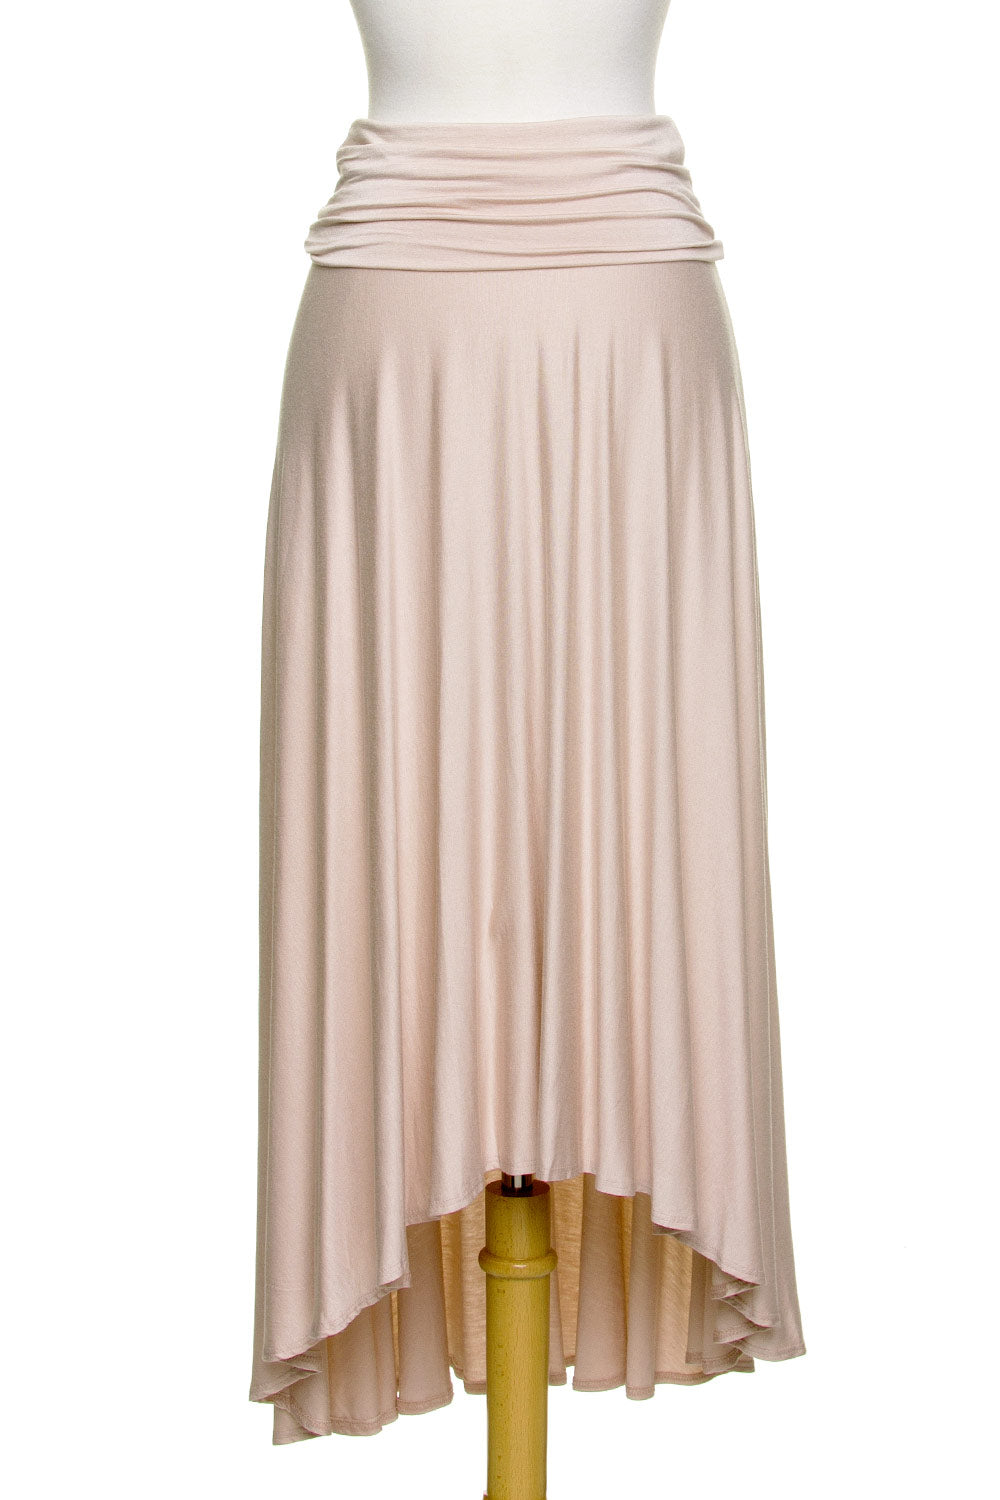 Type 2 Bare Minimum Maxi Skirt